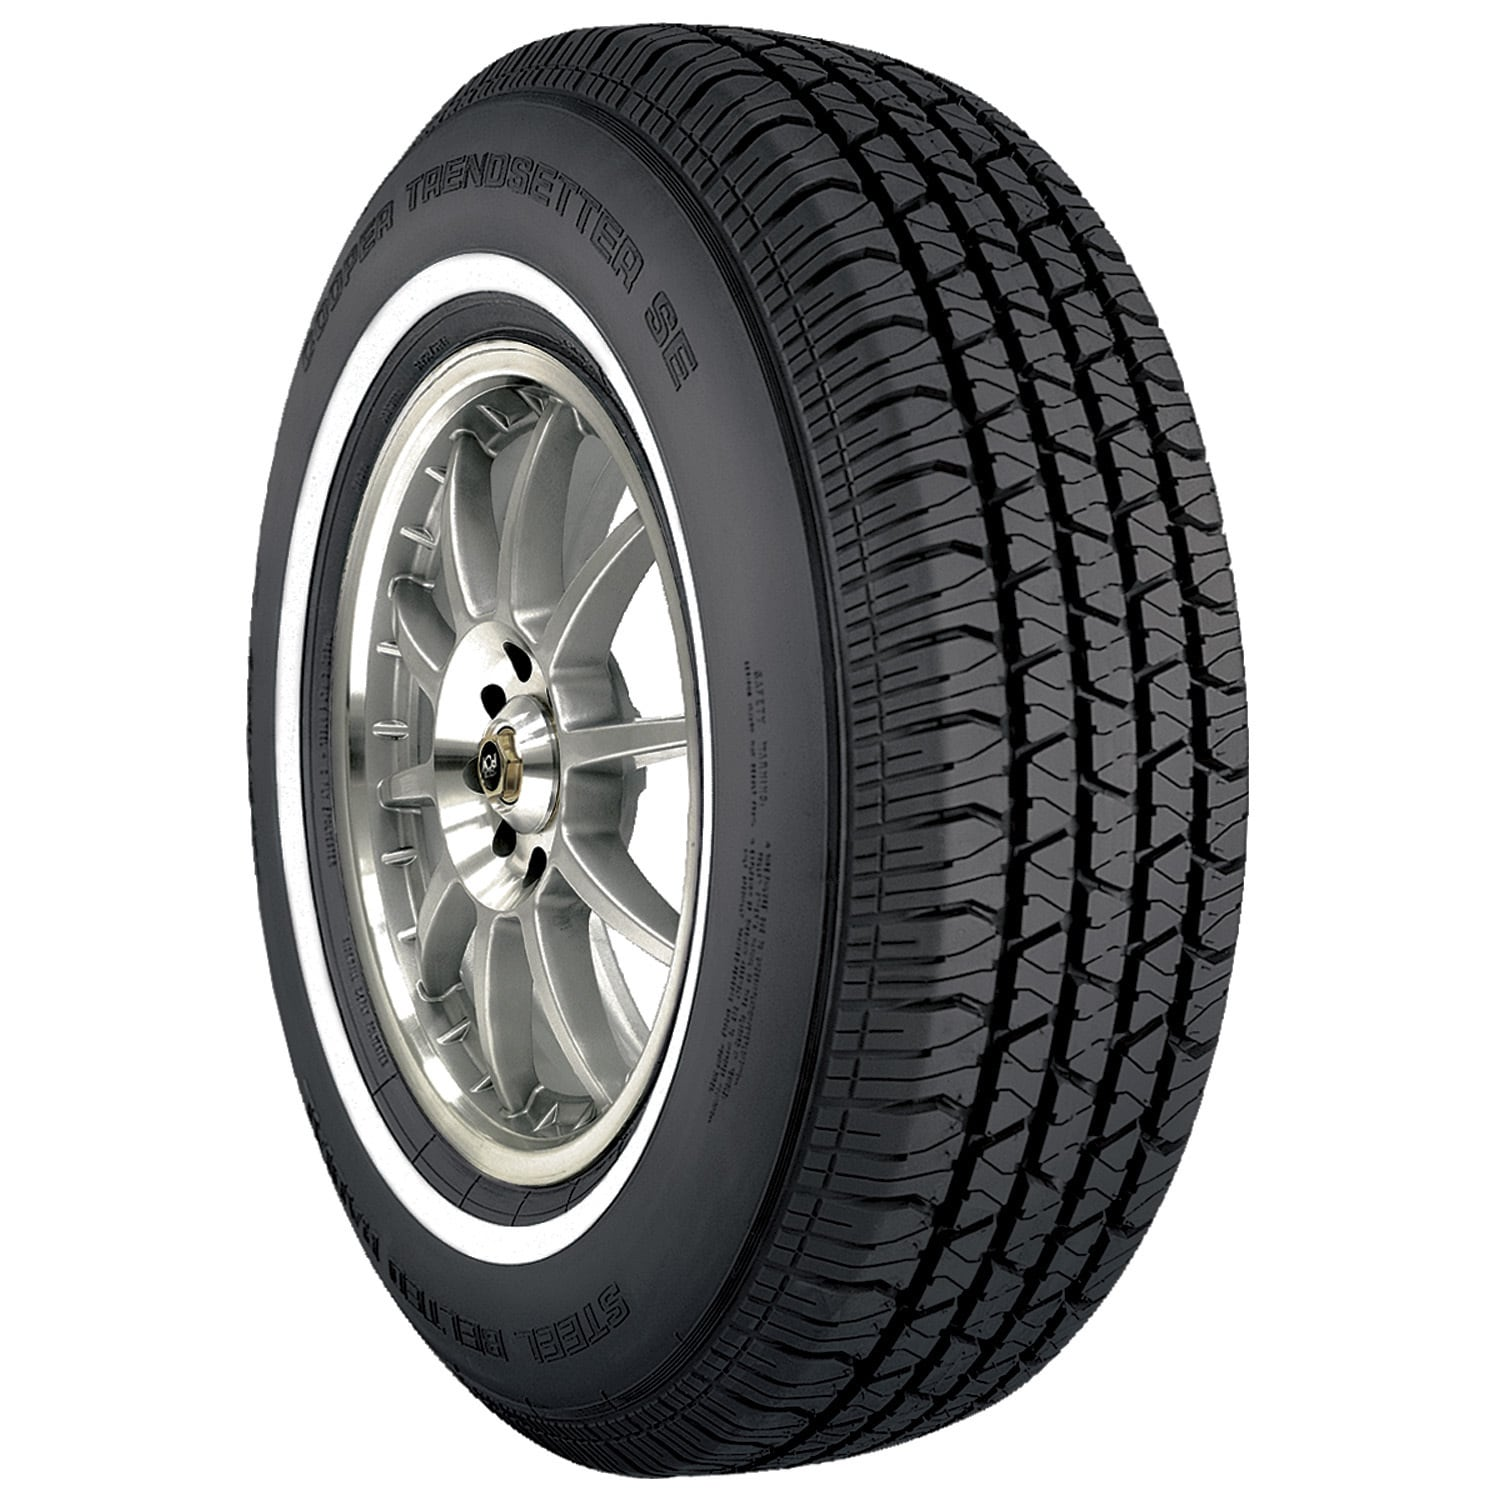 COOPER Trendsetter SE All Season Tire - 205/70R15 95S (Bl...